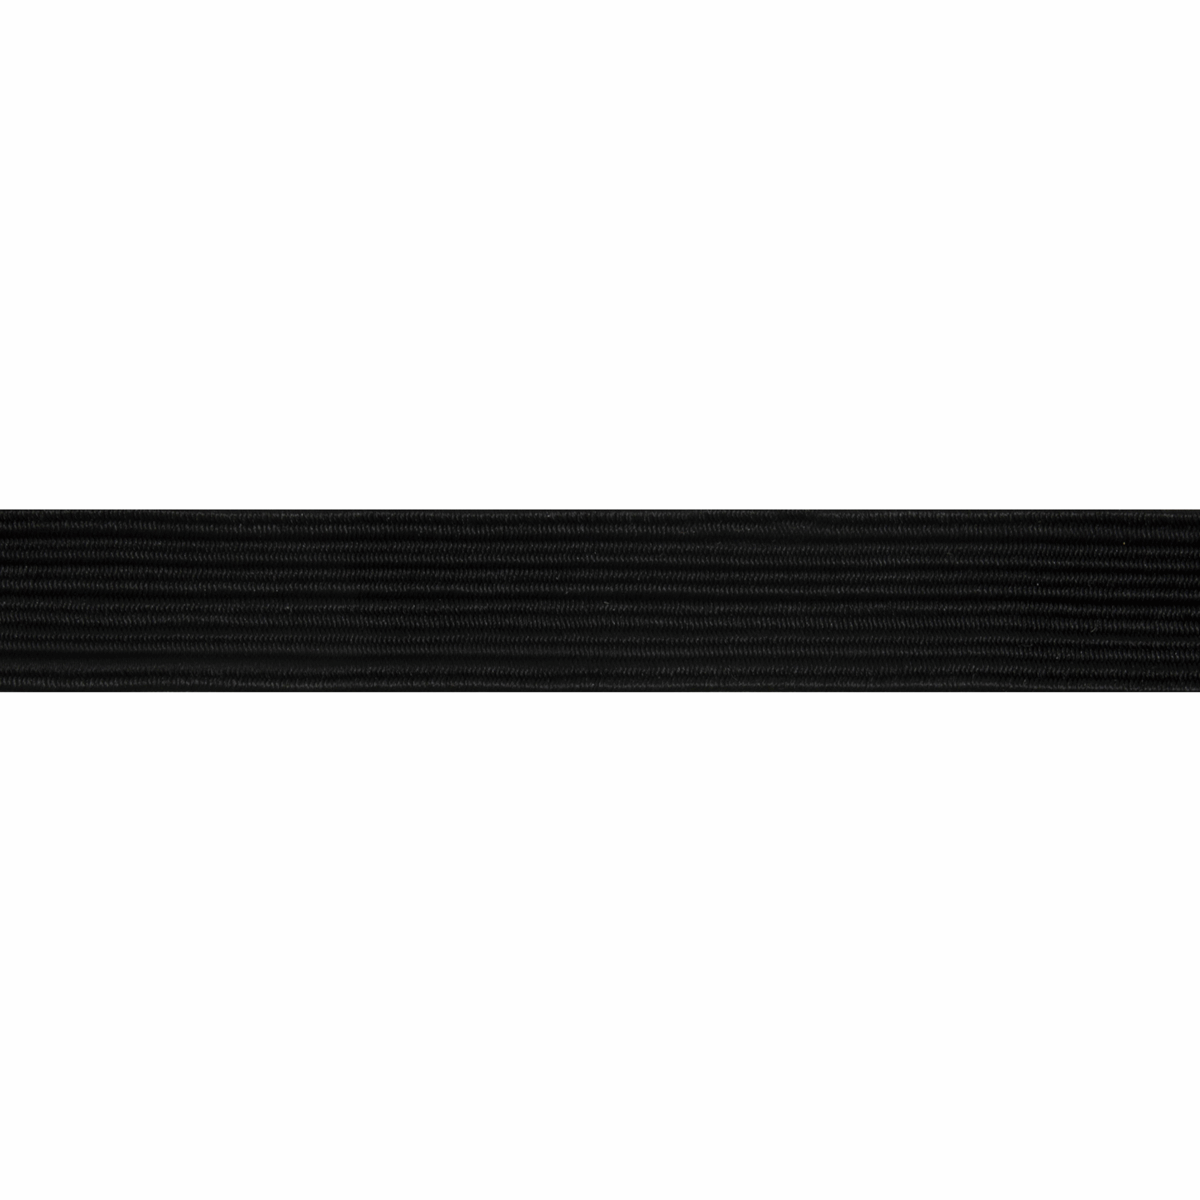 Picture of Braided Elastic 300m x 5mm: Black